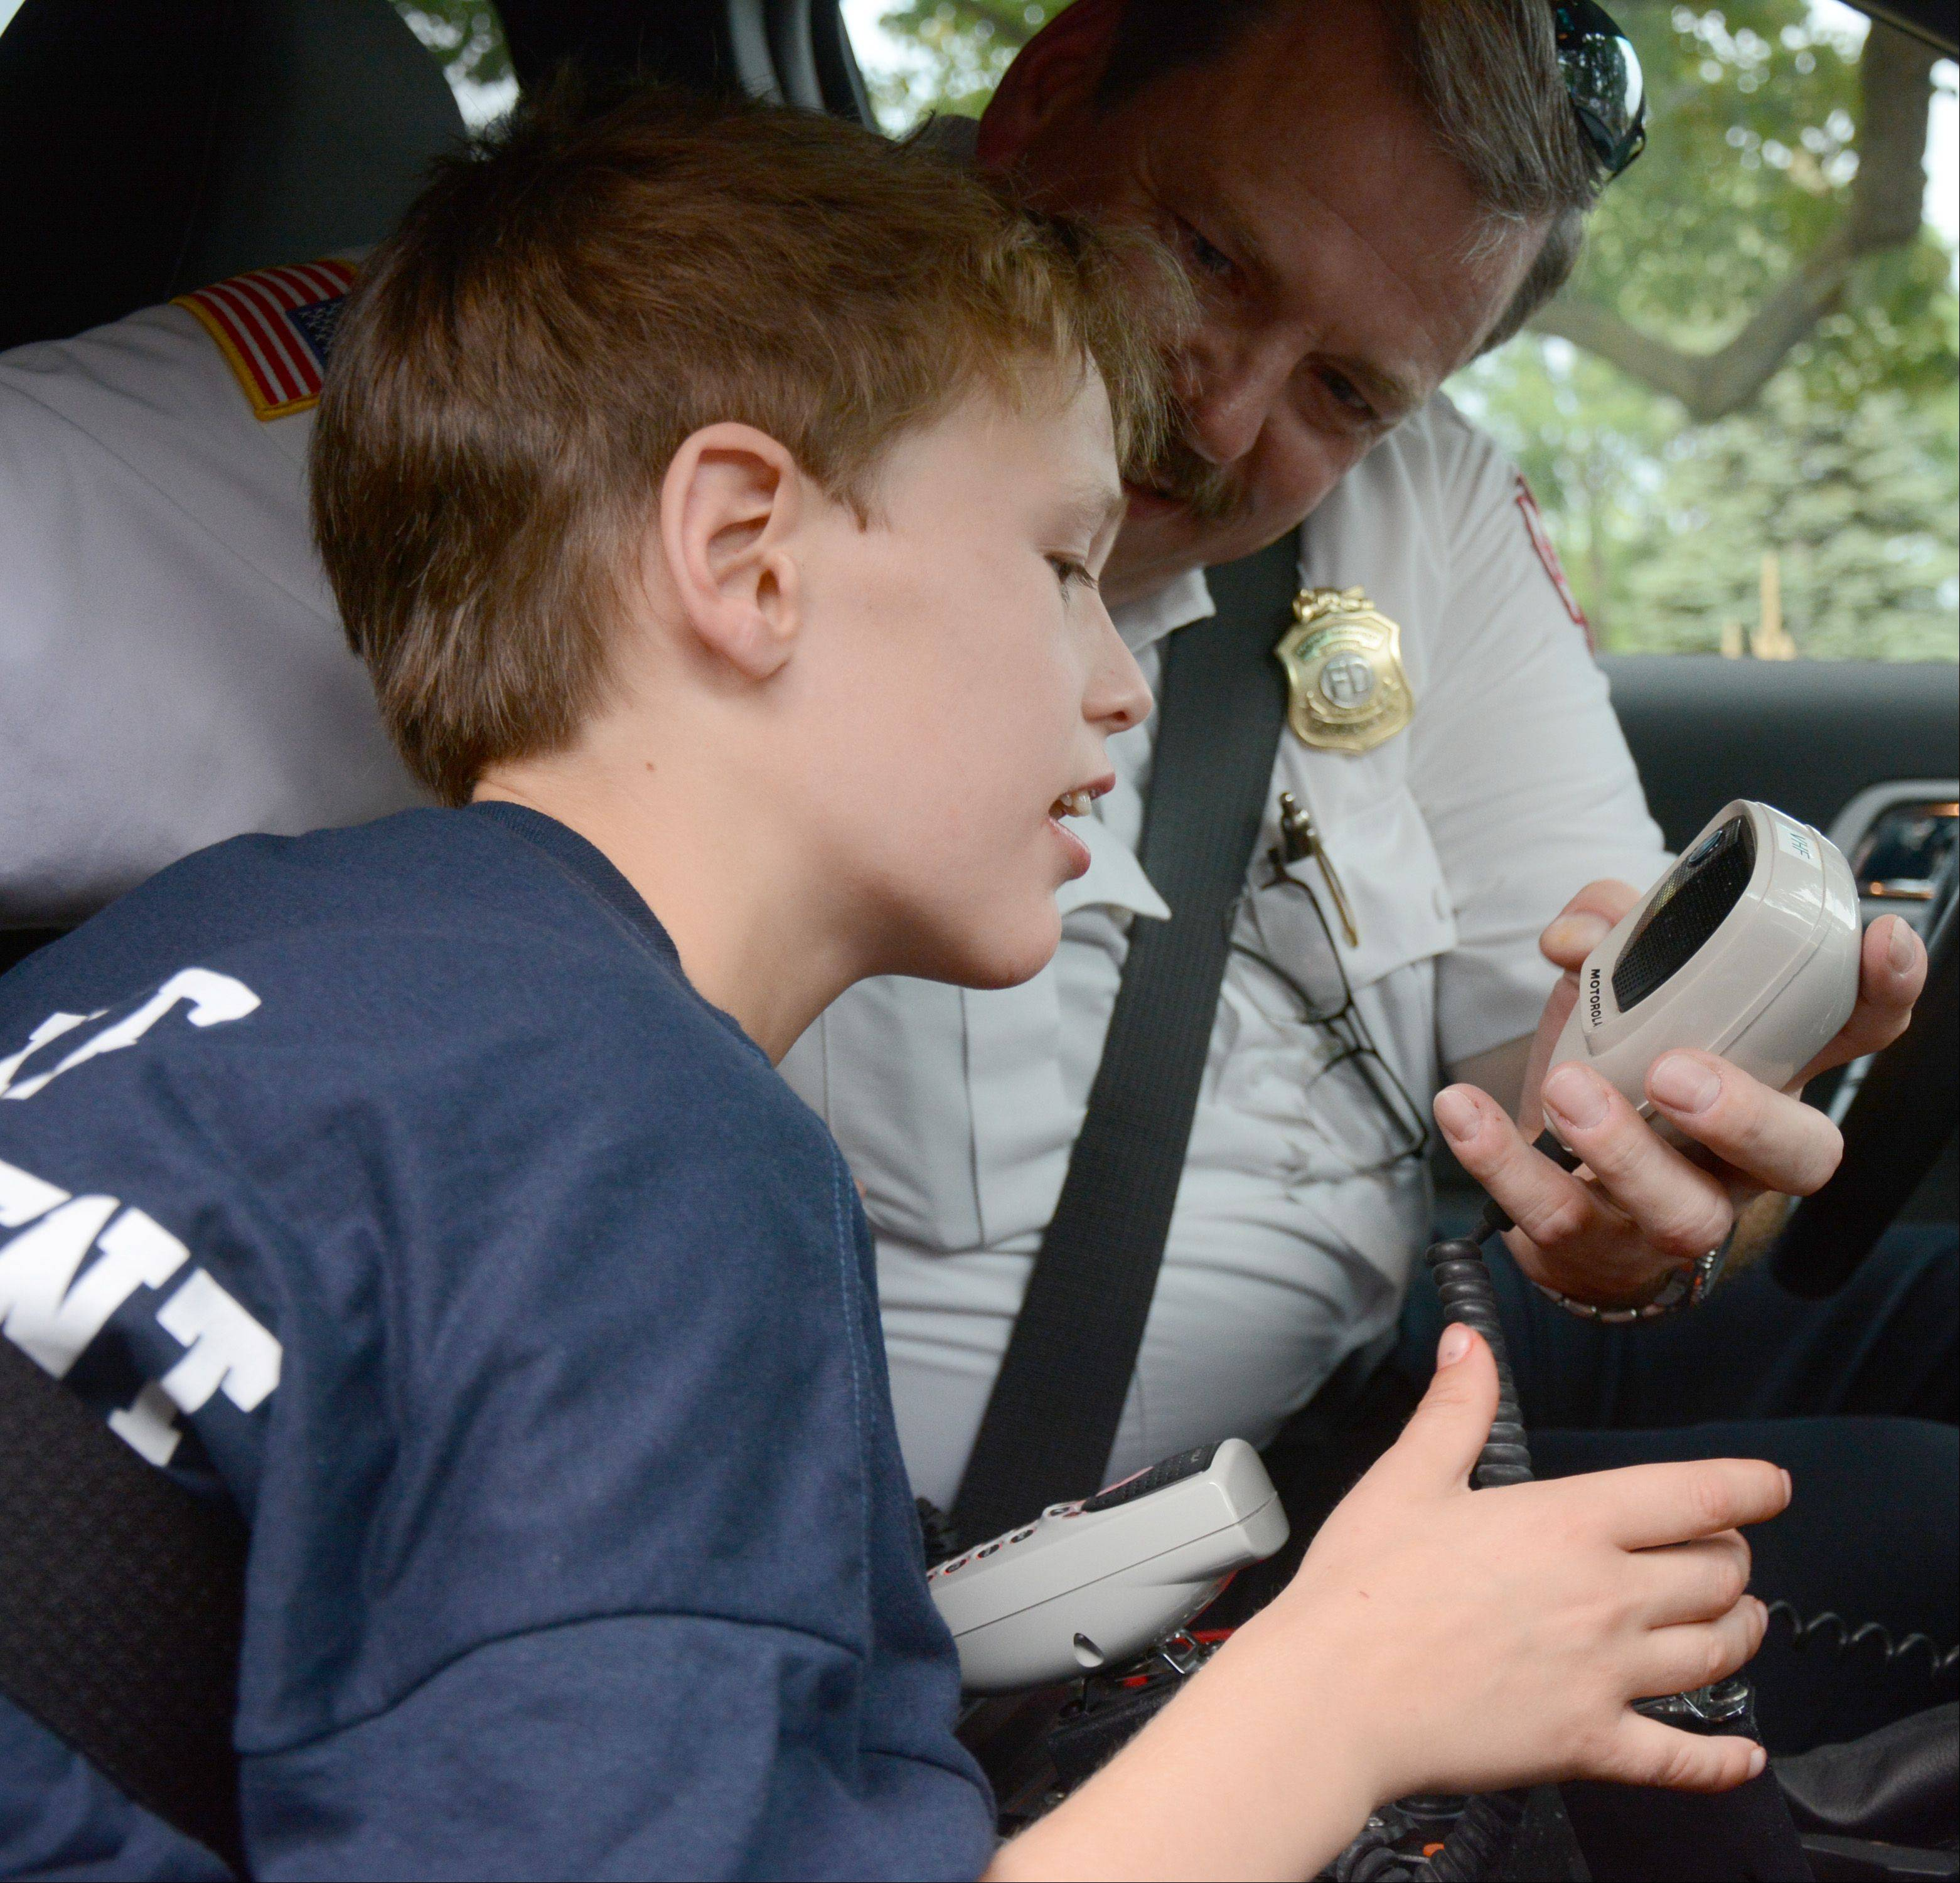 Mount Prospect Deputy Fire Chief Henry Dawson shows Zachary Jakubowski, 11, of Mount Prospect how to work the radio of his SUV during a visit the Mount Prospect Fire Department made to Zachary�s home Friday.